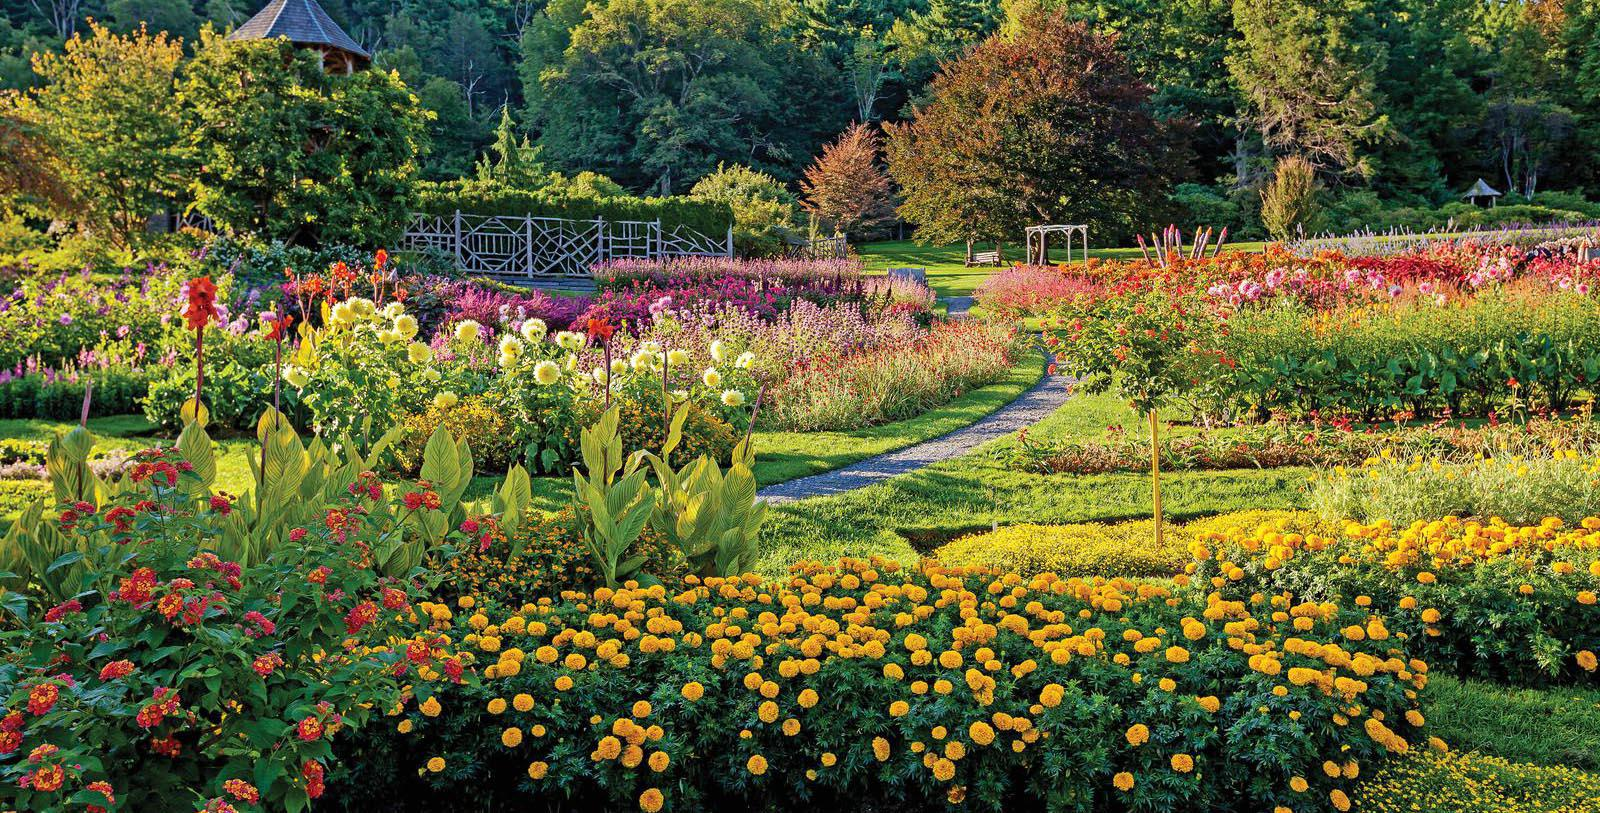 Image of magnificent and lush blooming gardens at Mohonk Mountain House in New York.a